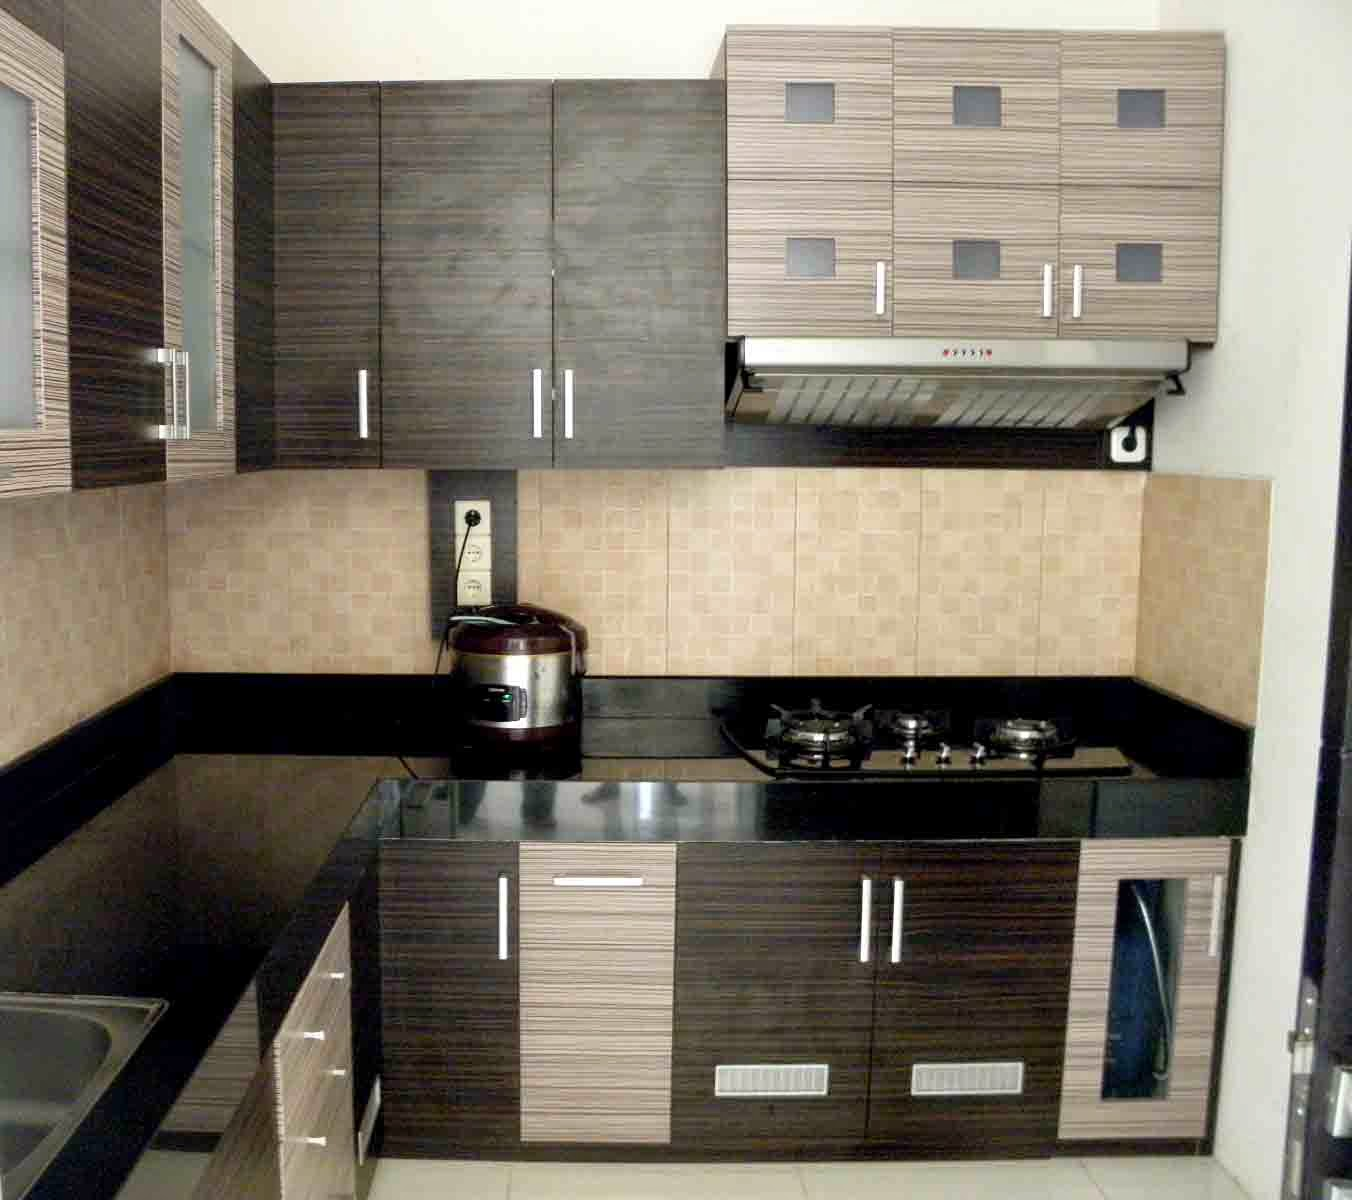 Harga kitchen set minimalis hp 0896 1474 9219 pin bbm for Harga kitchen set sederhana